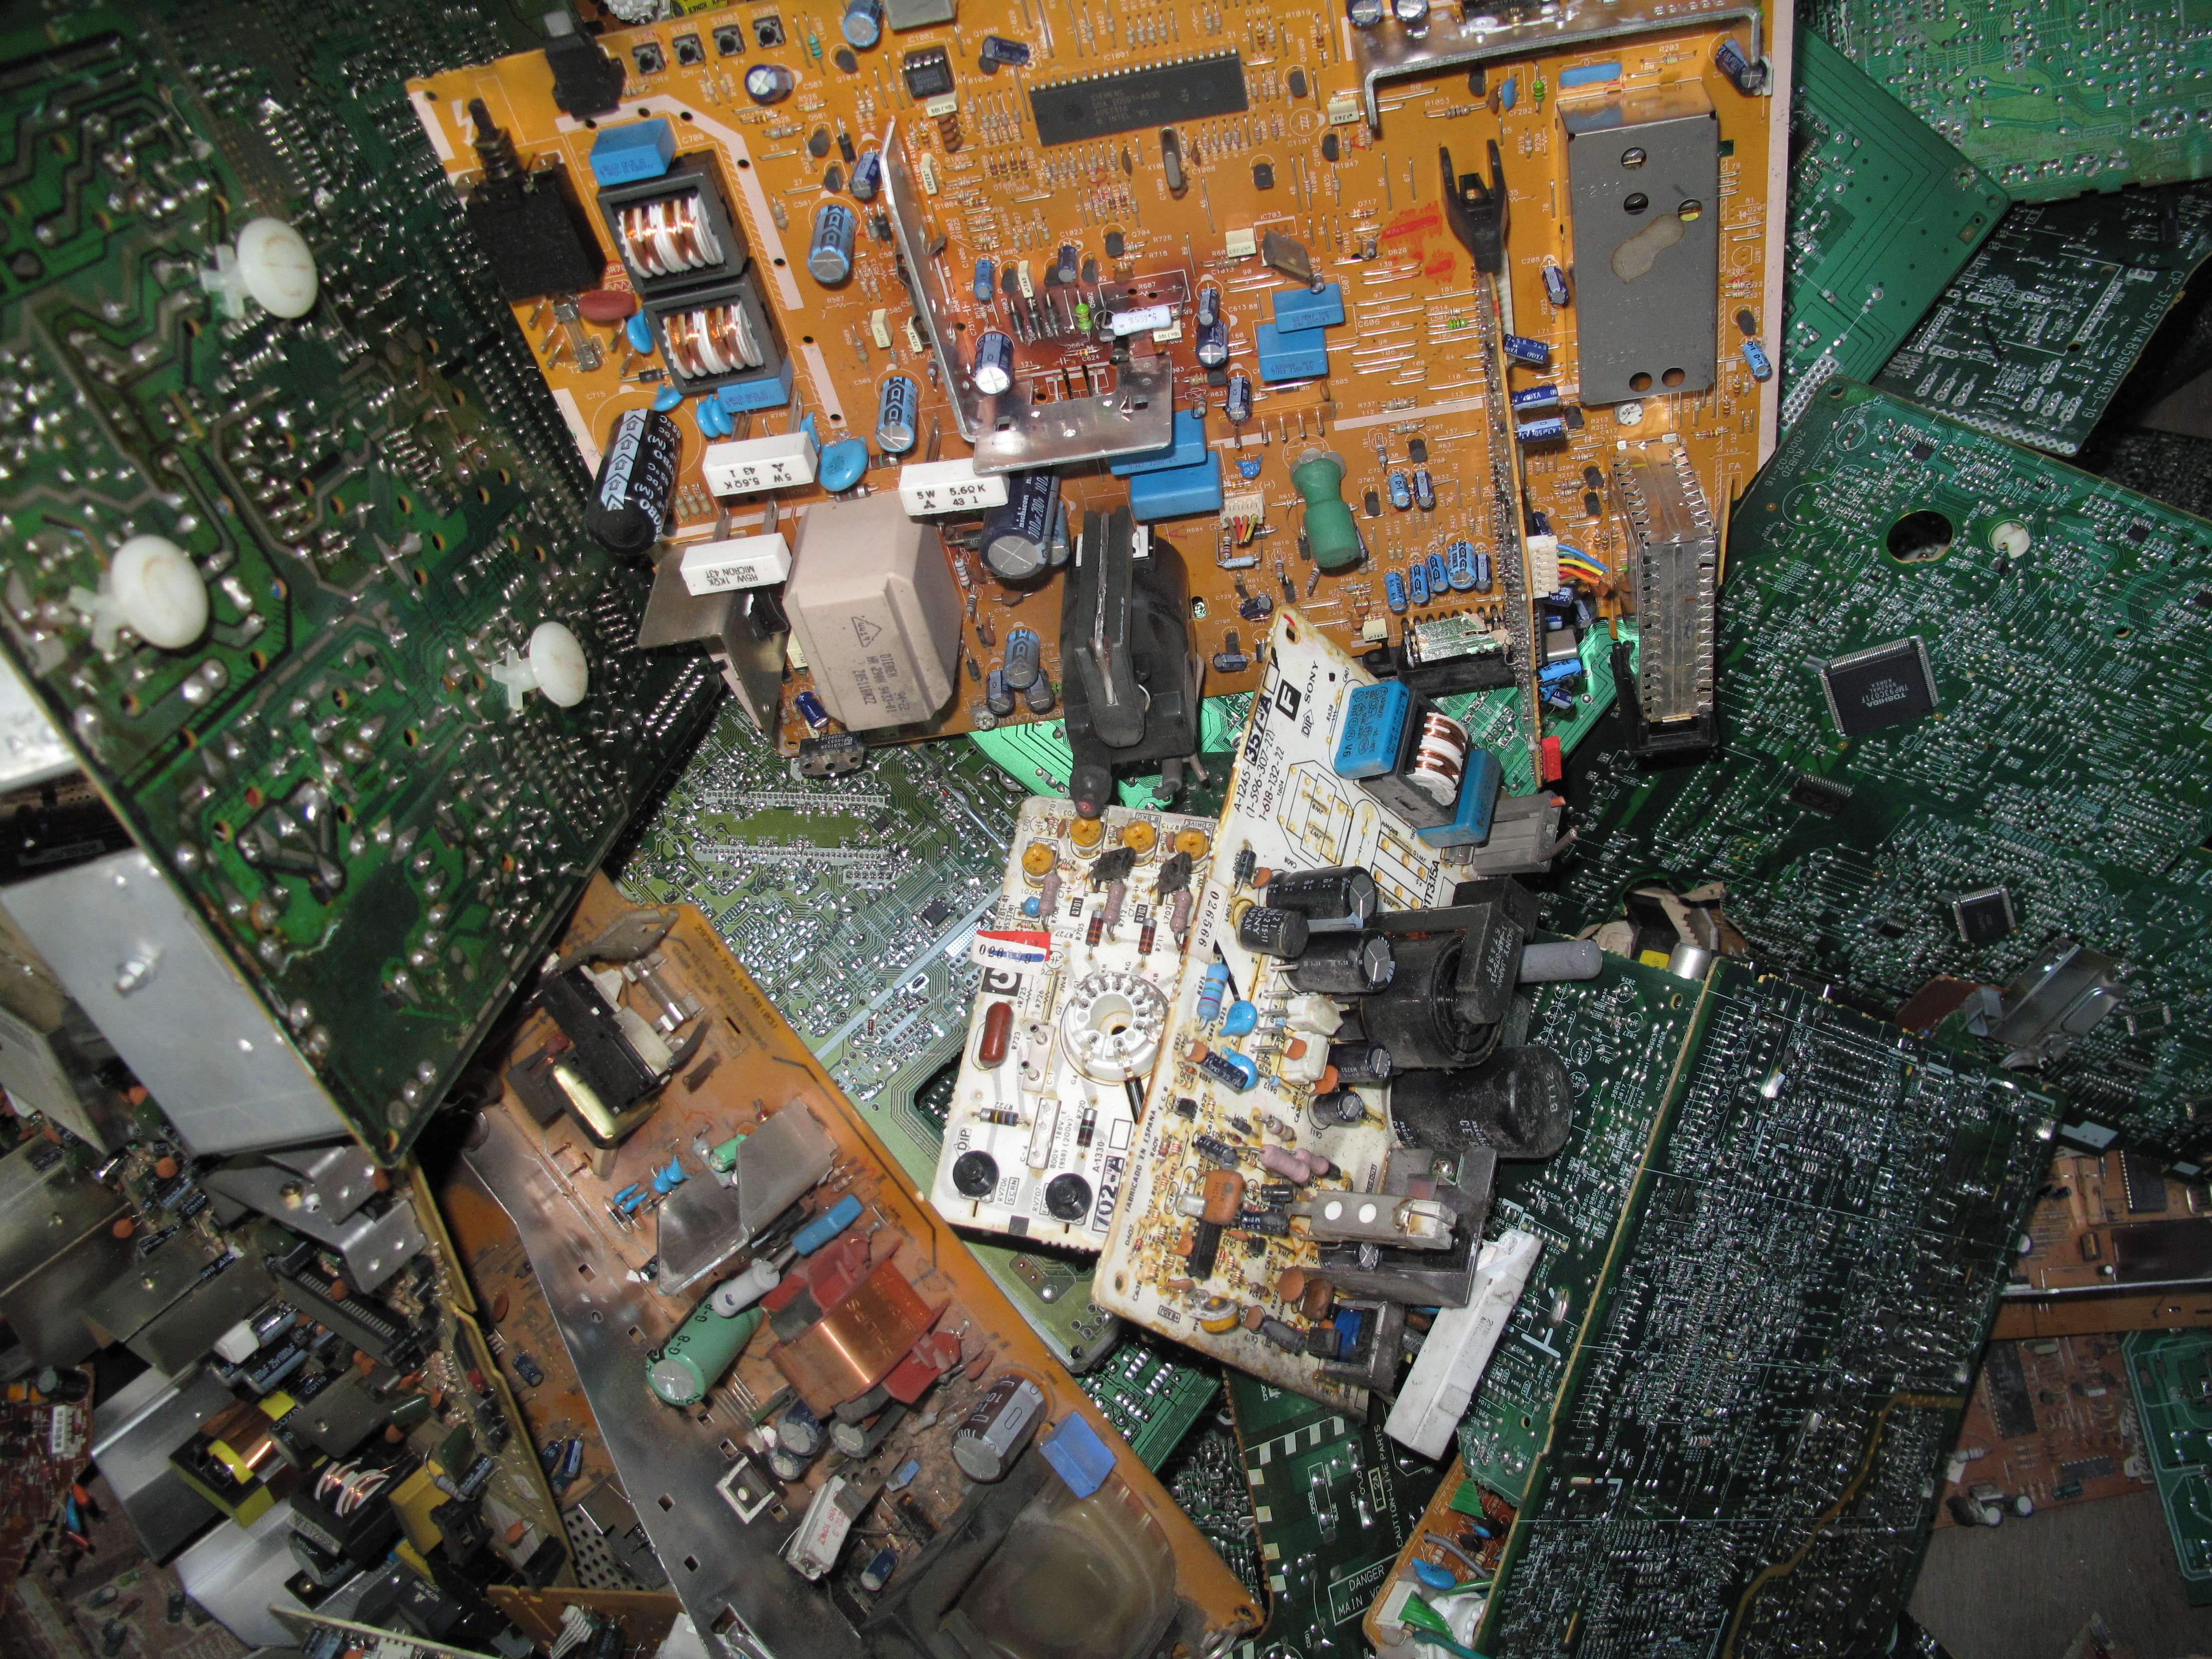 New Urban Mining Tools Map Valuable Resources Recycling Magazine Scrap Circuit Board Machine Computer Credit Weee Forum